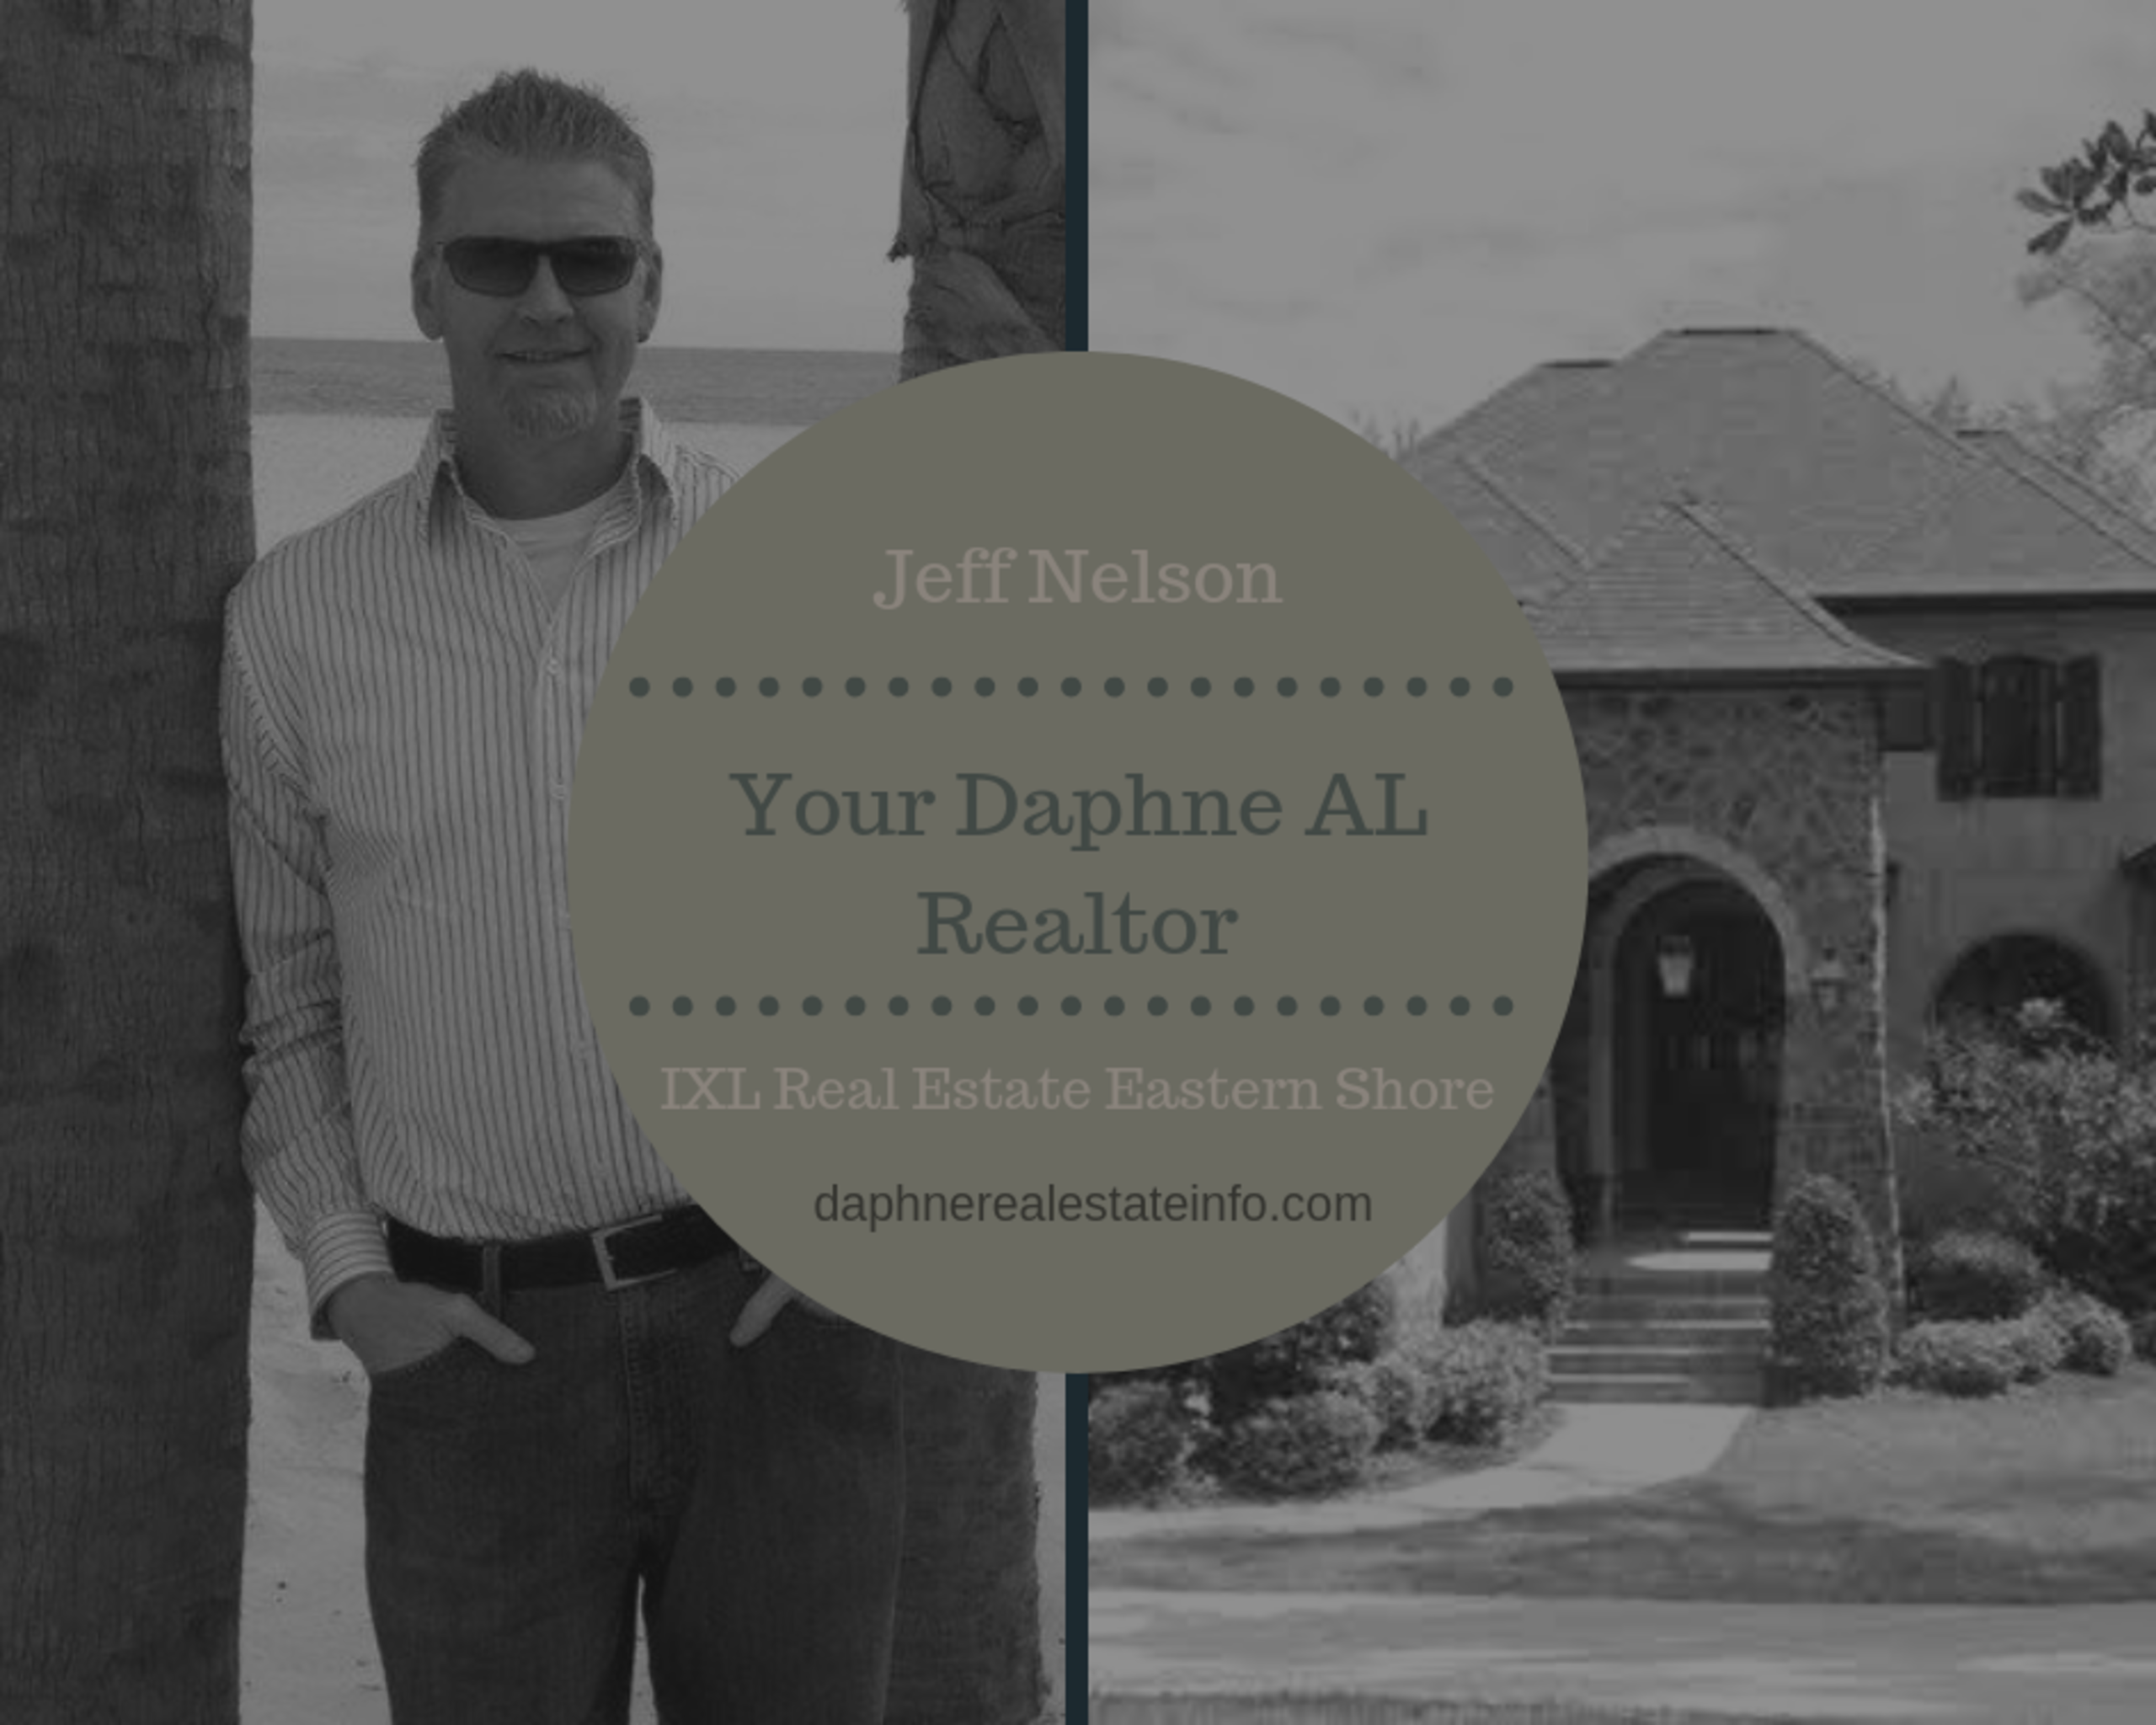 Your Daphne AL Realtor